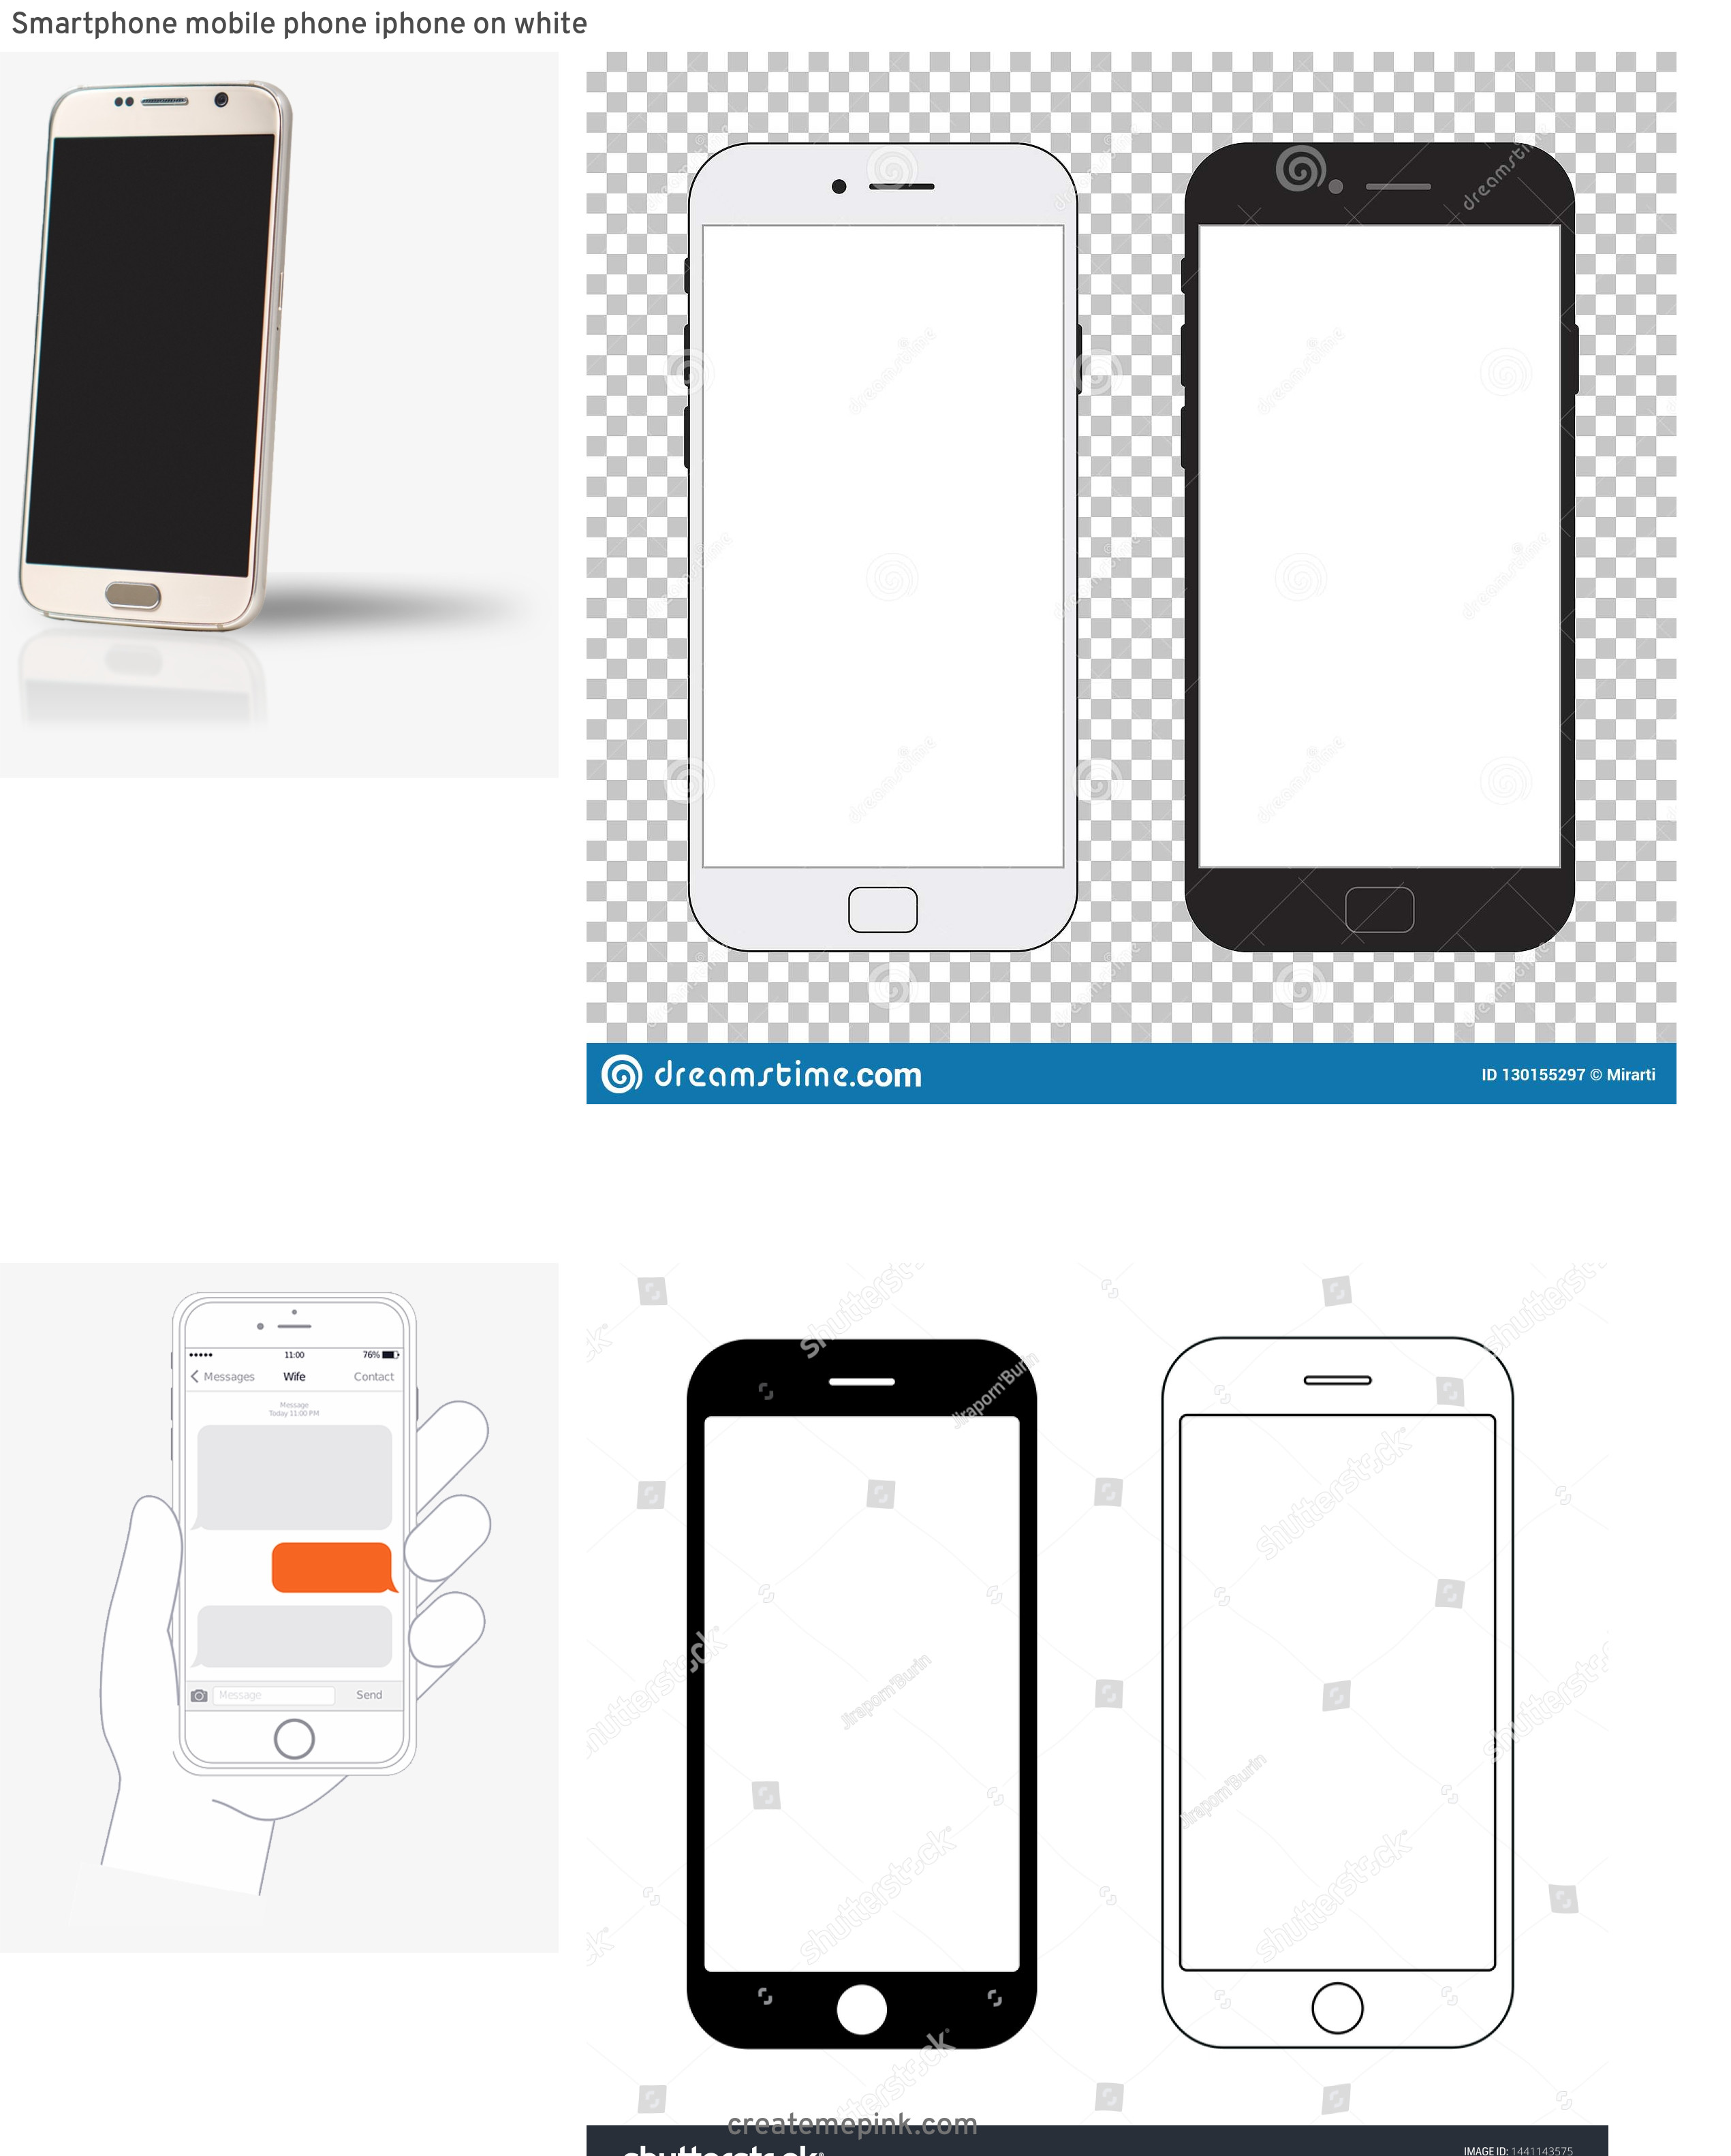 IPhone Vector Transparent Background: Smartphone Mobile Phone Iphone On White